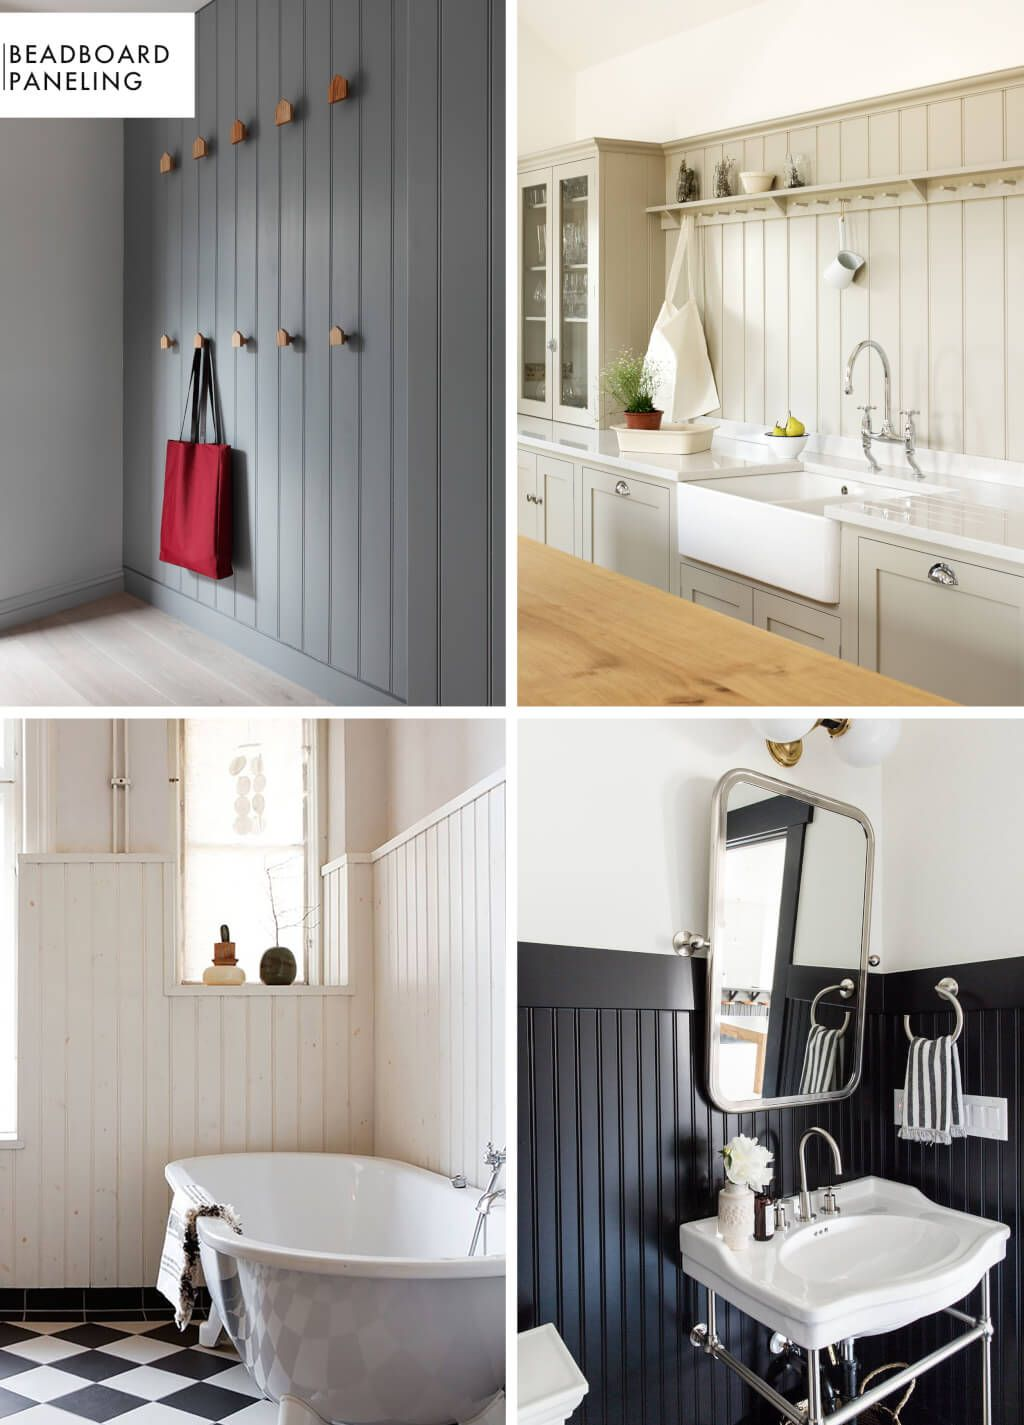 Add Character To Basic Architecture Wall Paneling A Roundup Emily Henderson Bathroom Wall Panels Beadboard Bathroom Interior Cladding